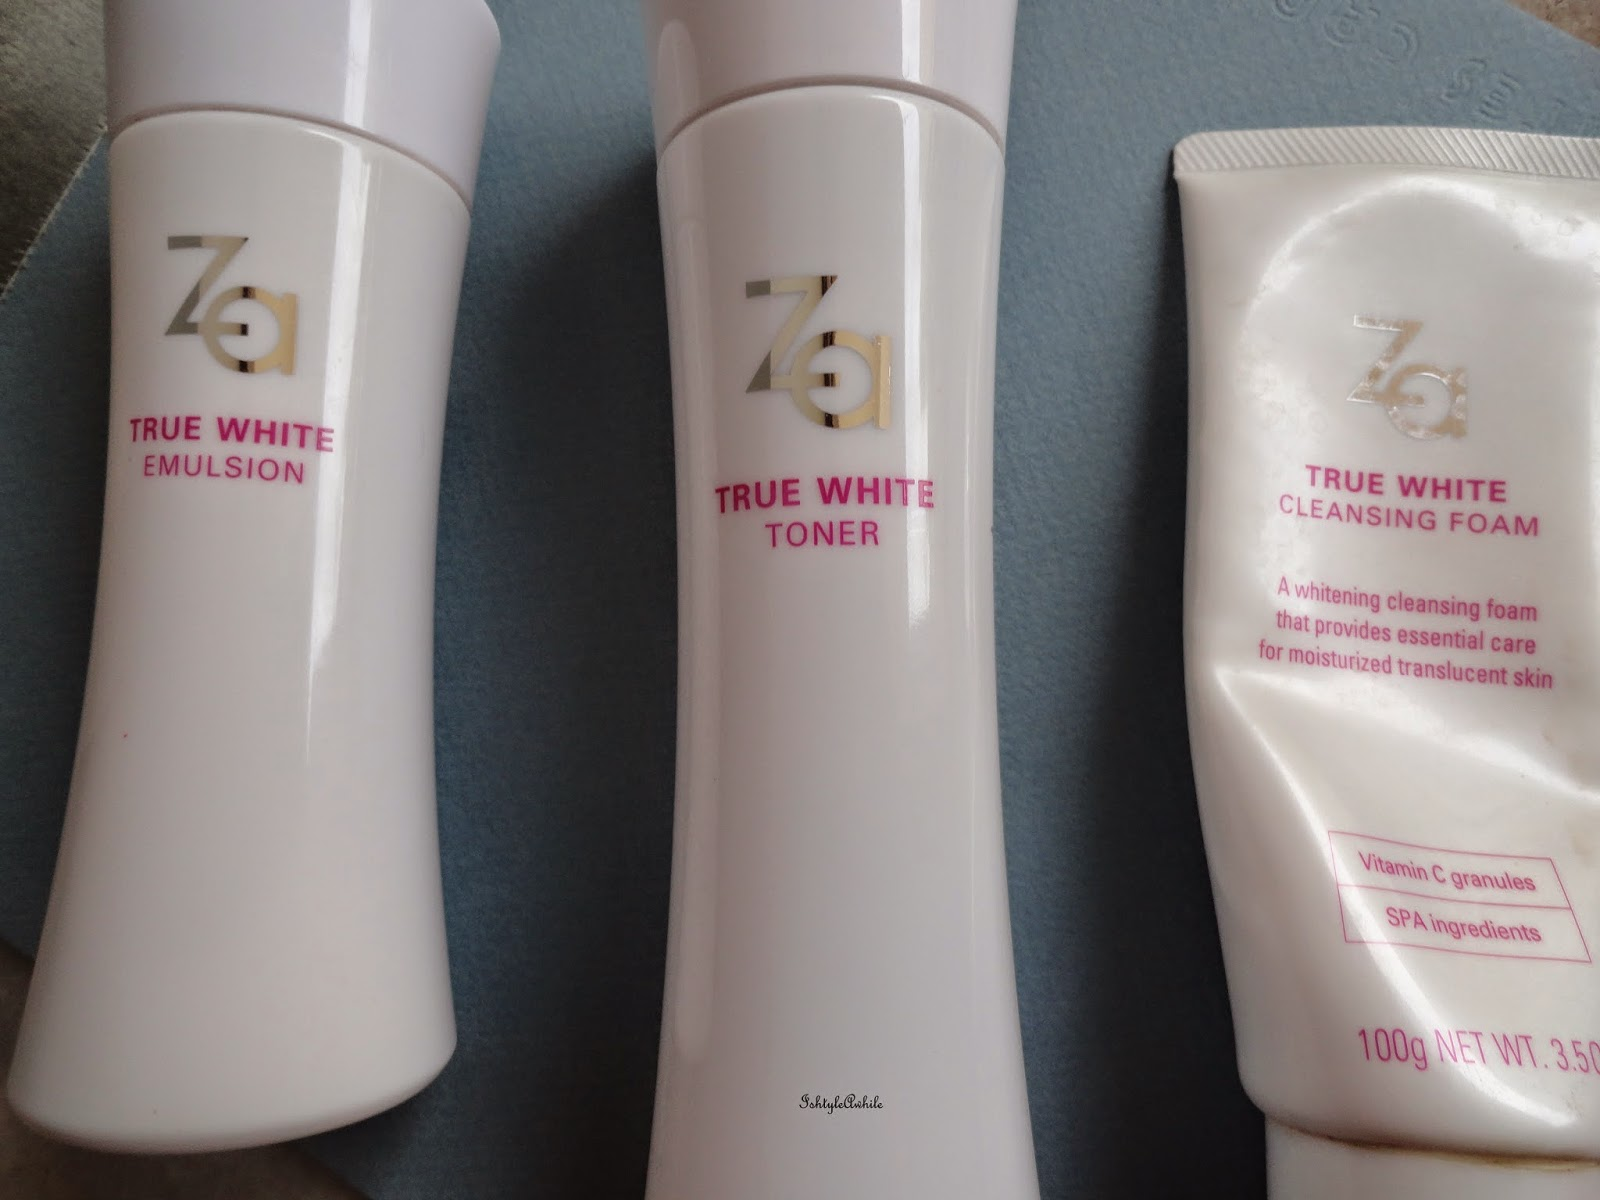 My Morning Skin care routine with ZA True White products image